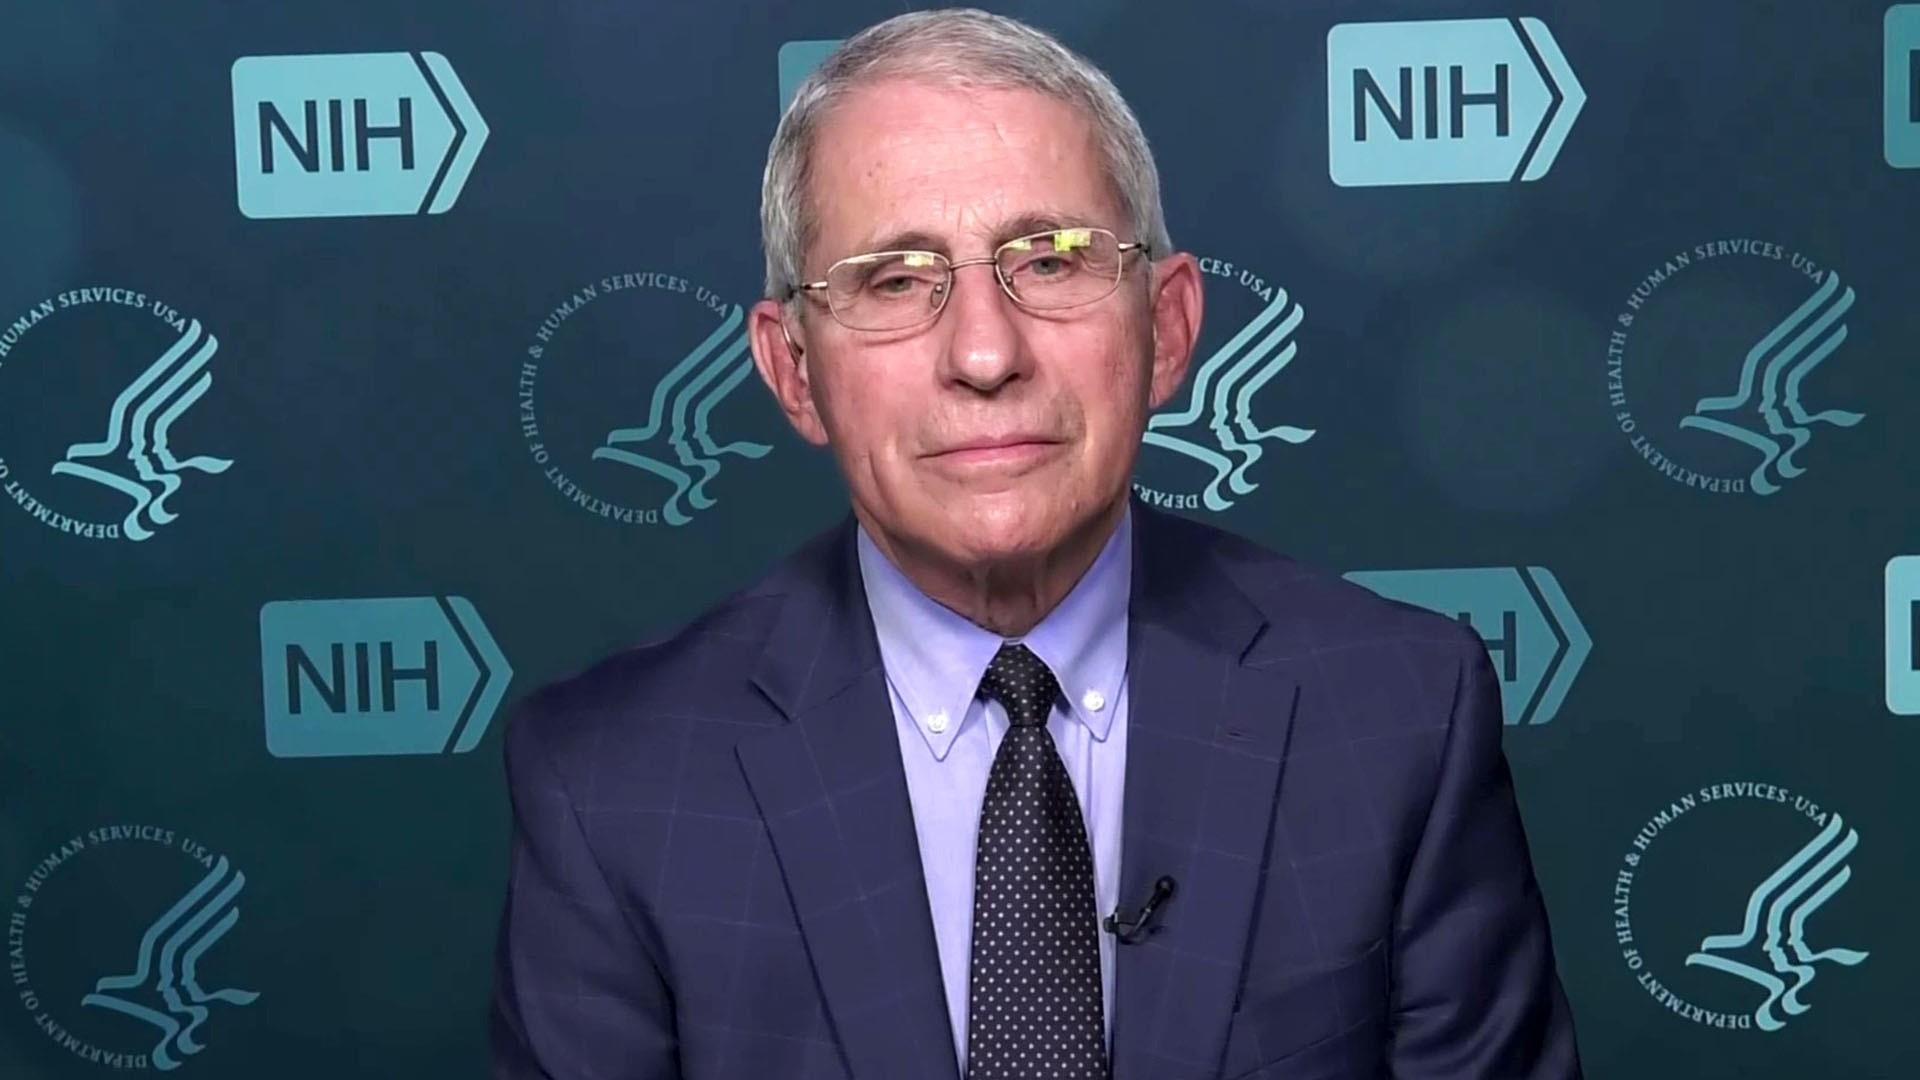 Fauci Hopeful Over Very Encouraging Trial Results Of New Covid Vaccines